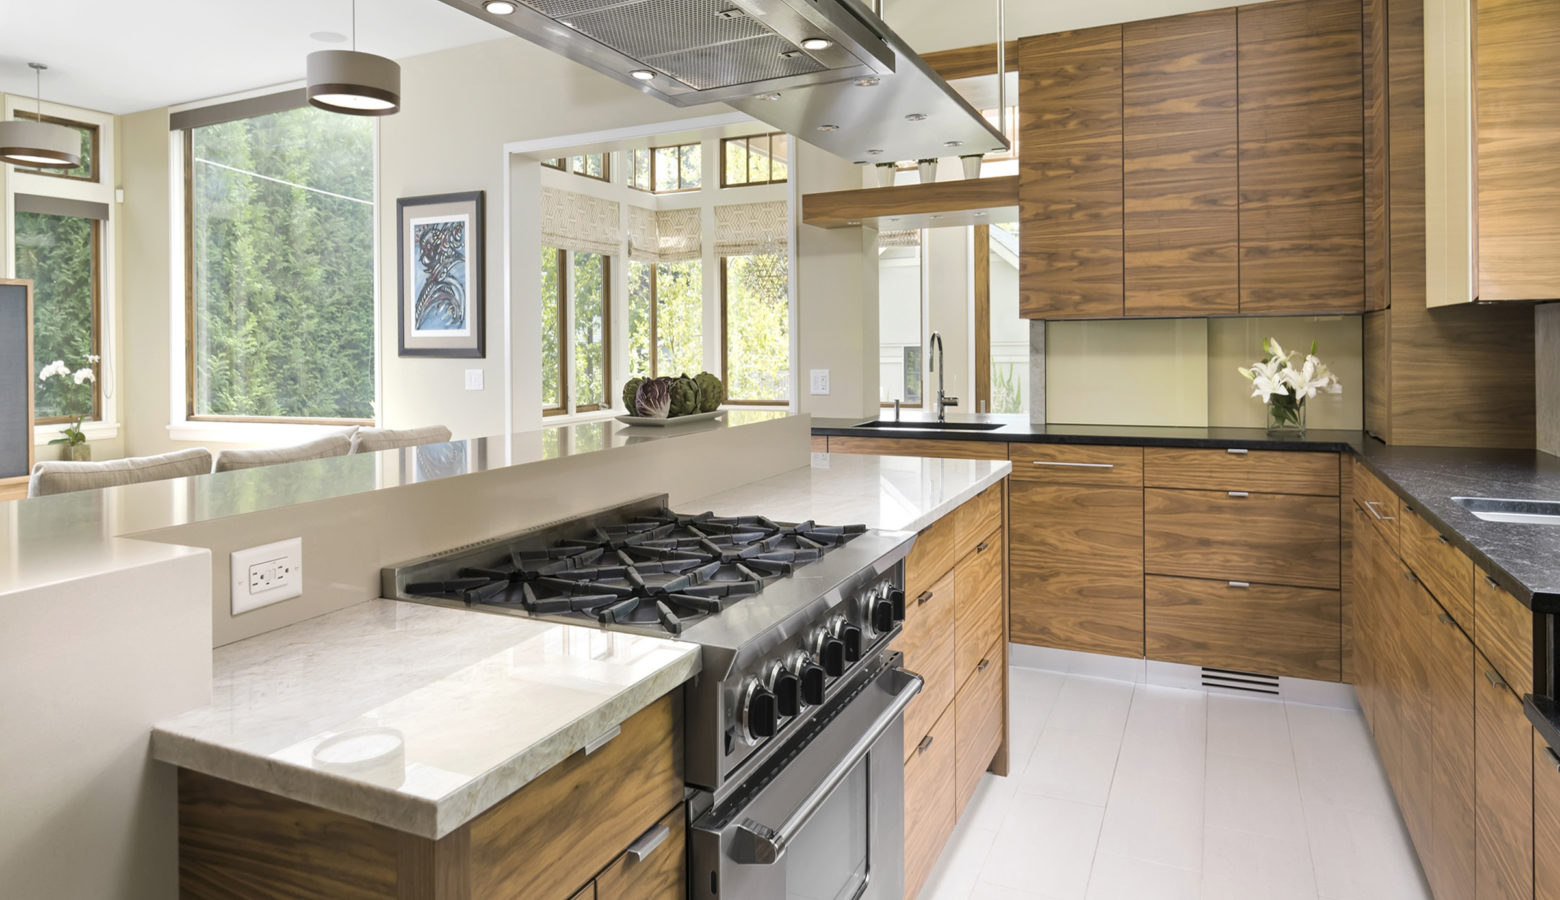 Kitchen Design Tips | Islands, Cooktops, Sinks | Chicago Architects